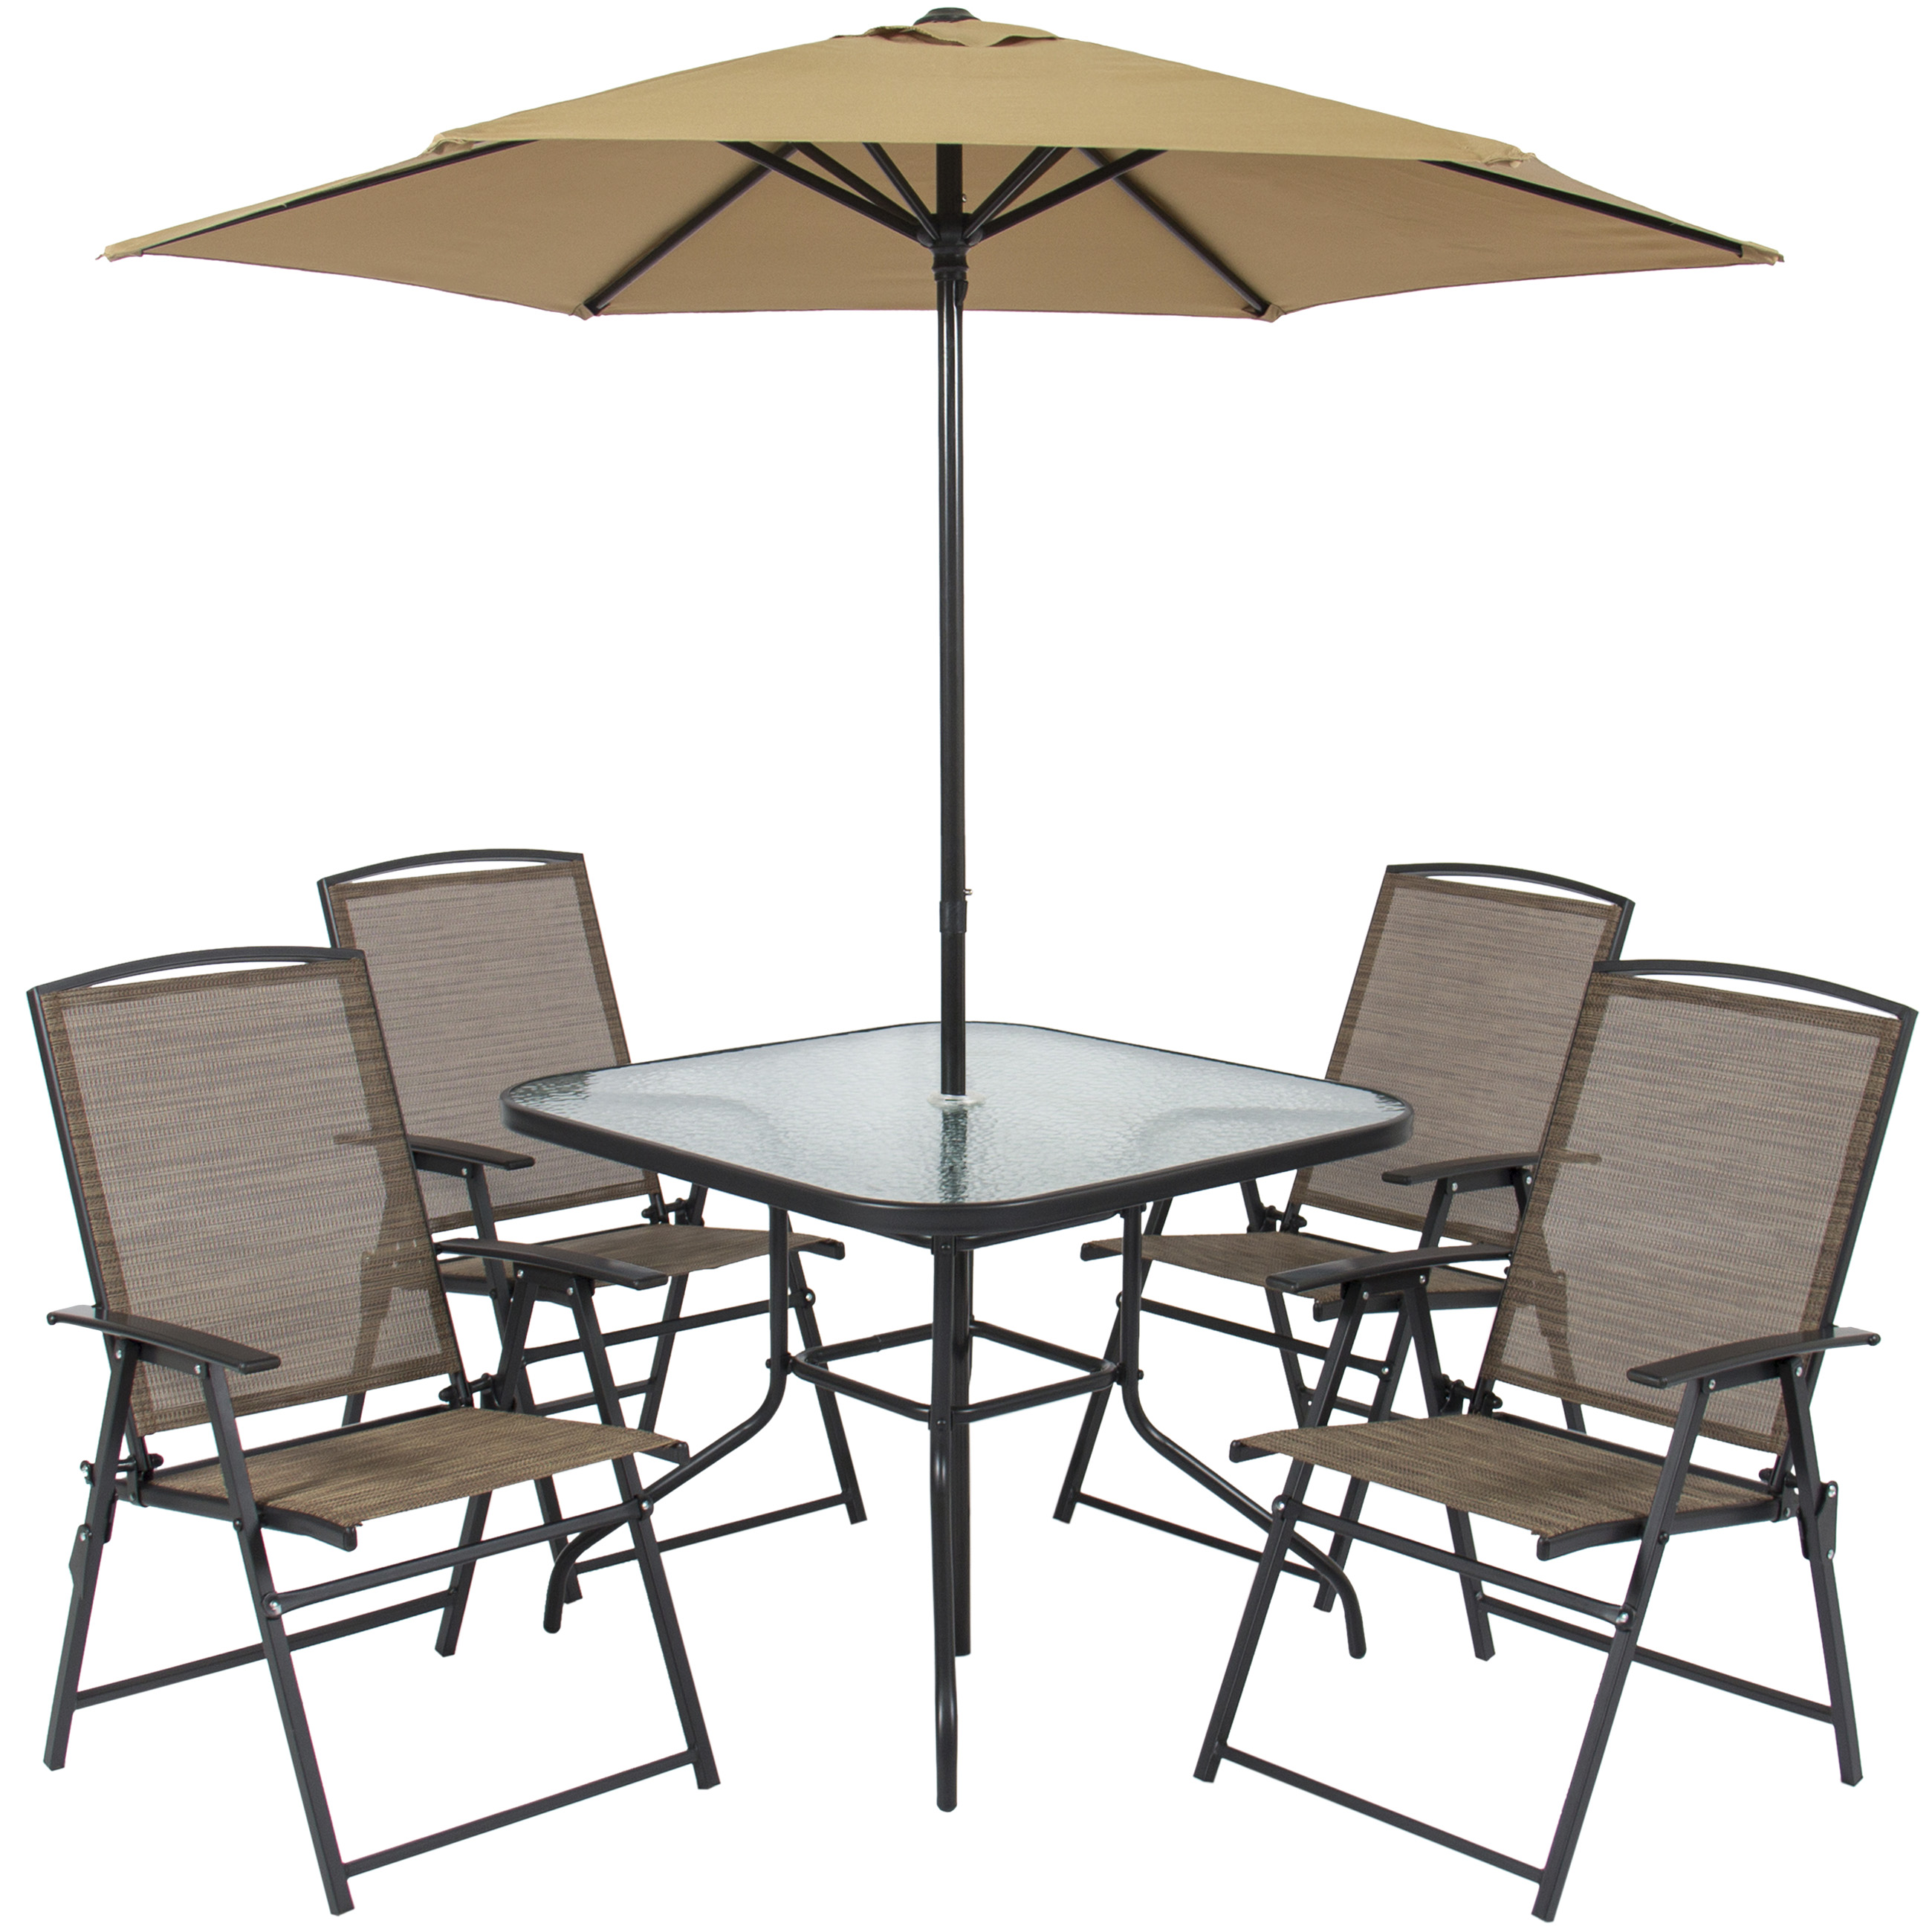 best choice products 6pc outdoor folding patio dining set w table 4 chairs umbrella and built in base walmartcom - Garden Furniture Tables